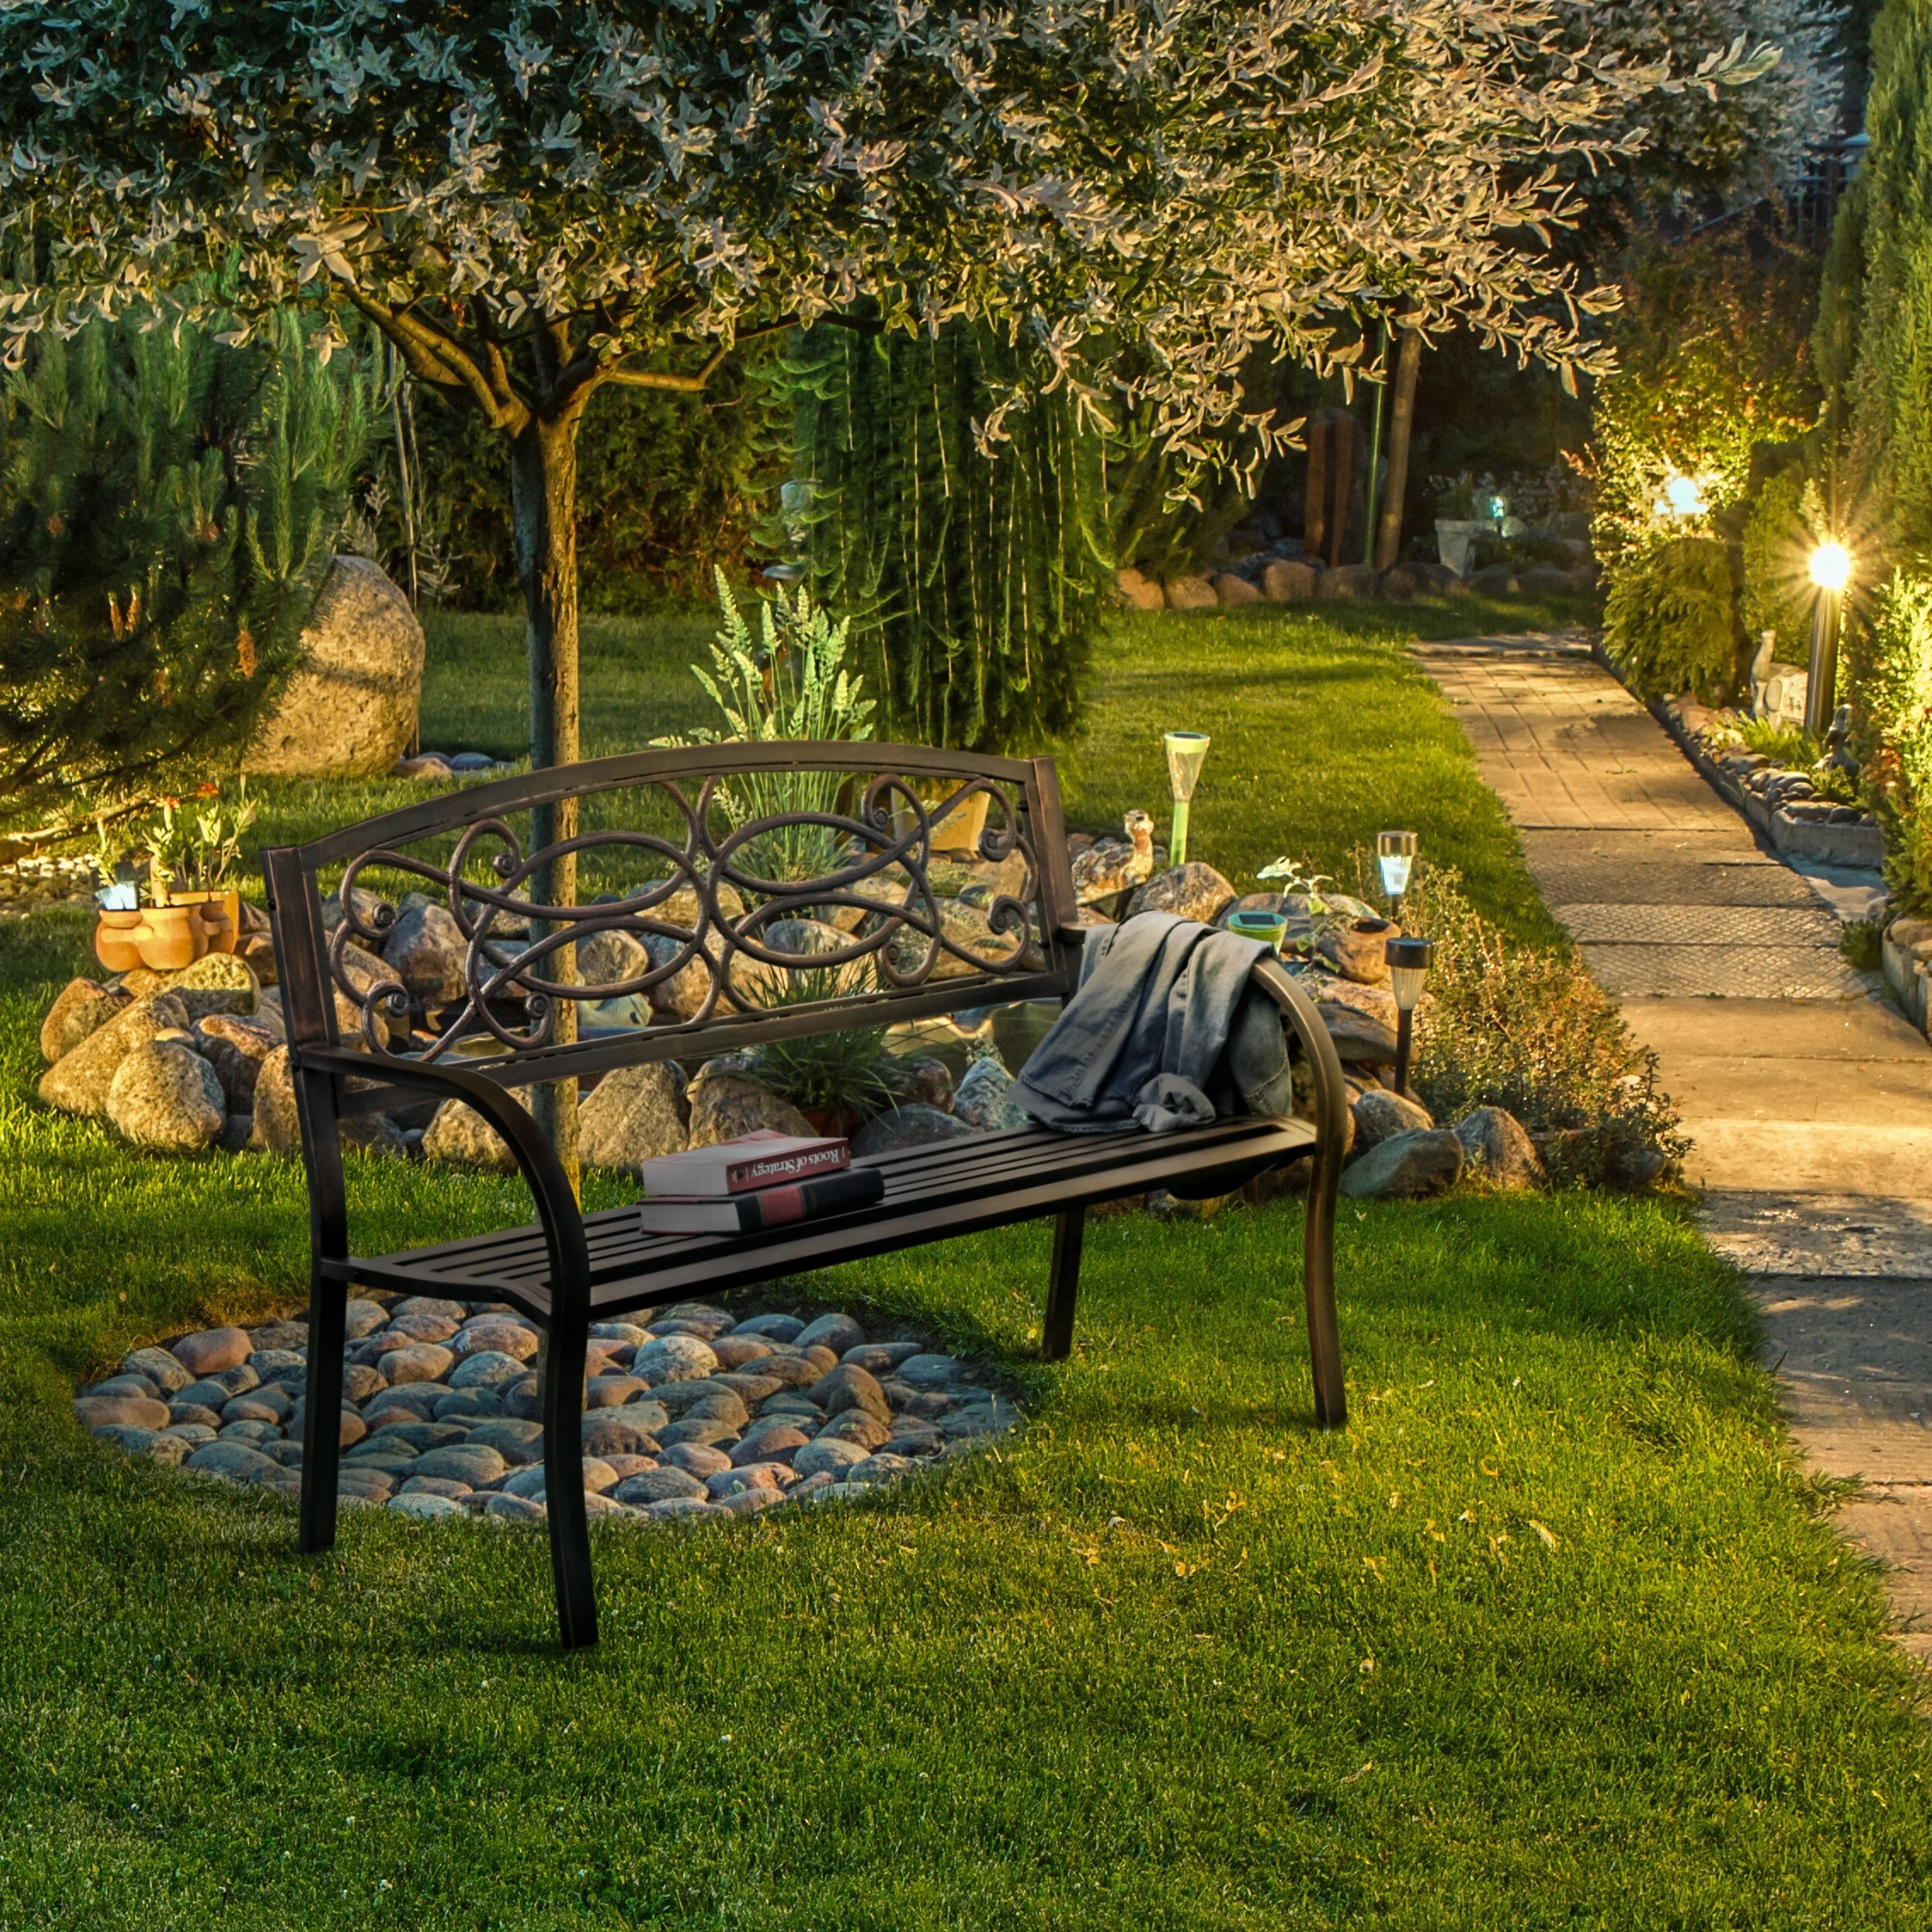 Garden Seats Benches Buy Outdoor Benches Online At Overstock Our Best Patio Furniture